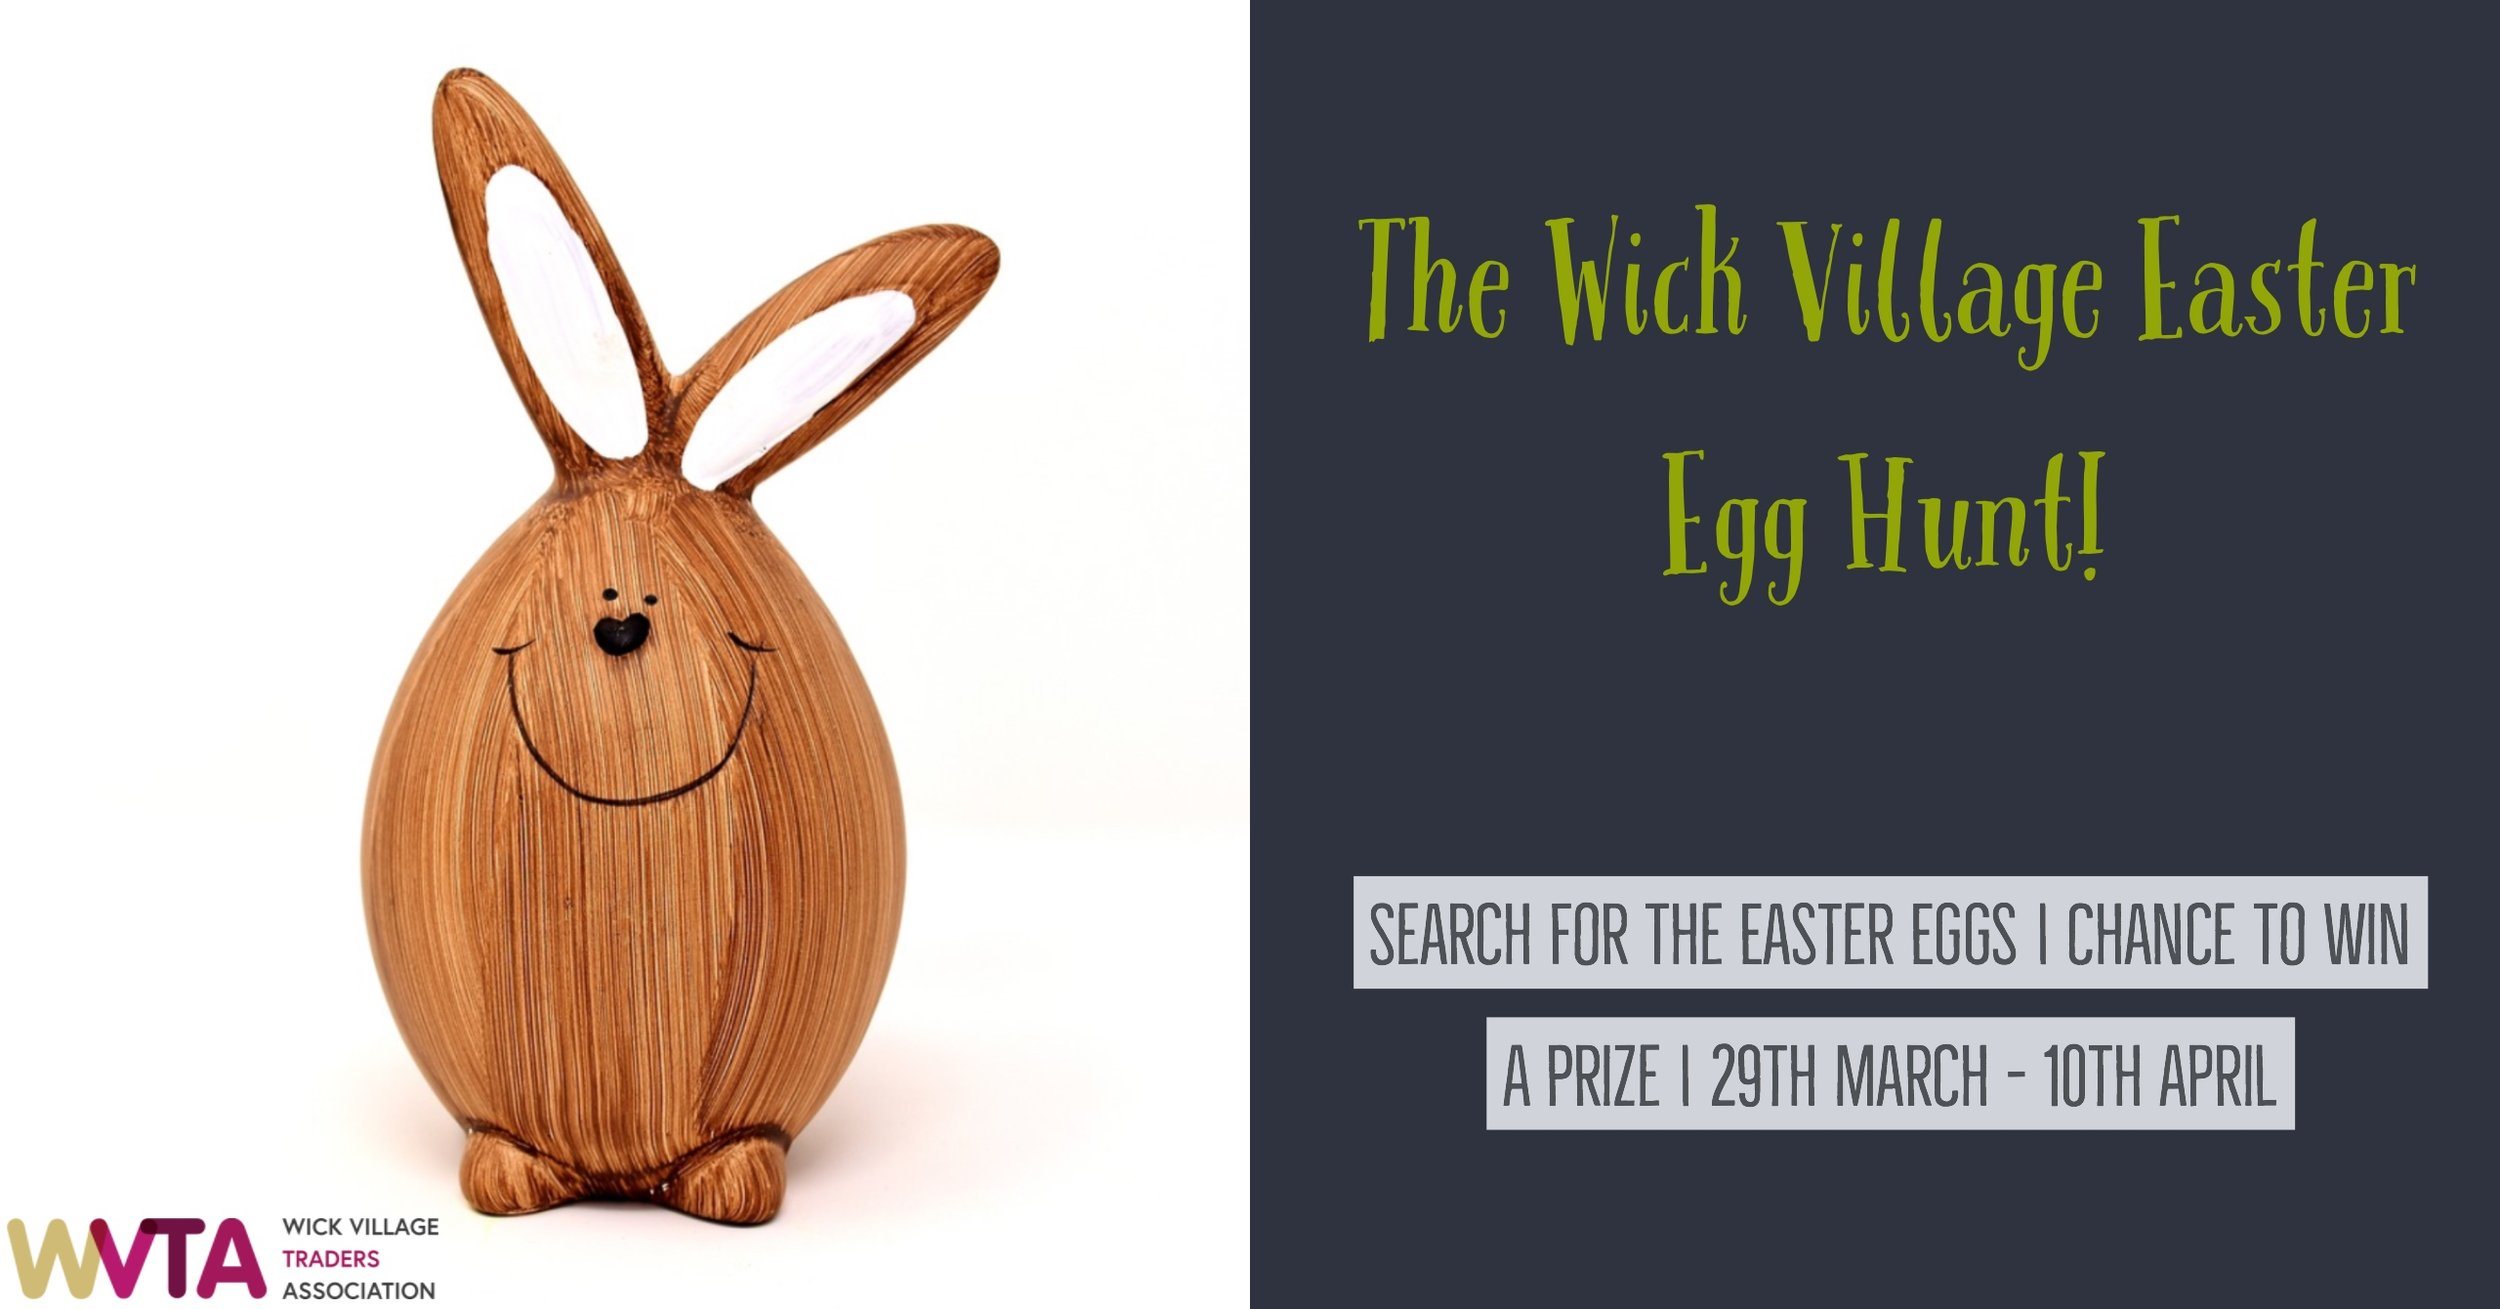 The Wick Village Easter Egg Hunt 2018 - What's On In Littlehampton.